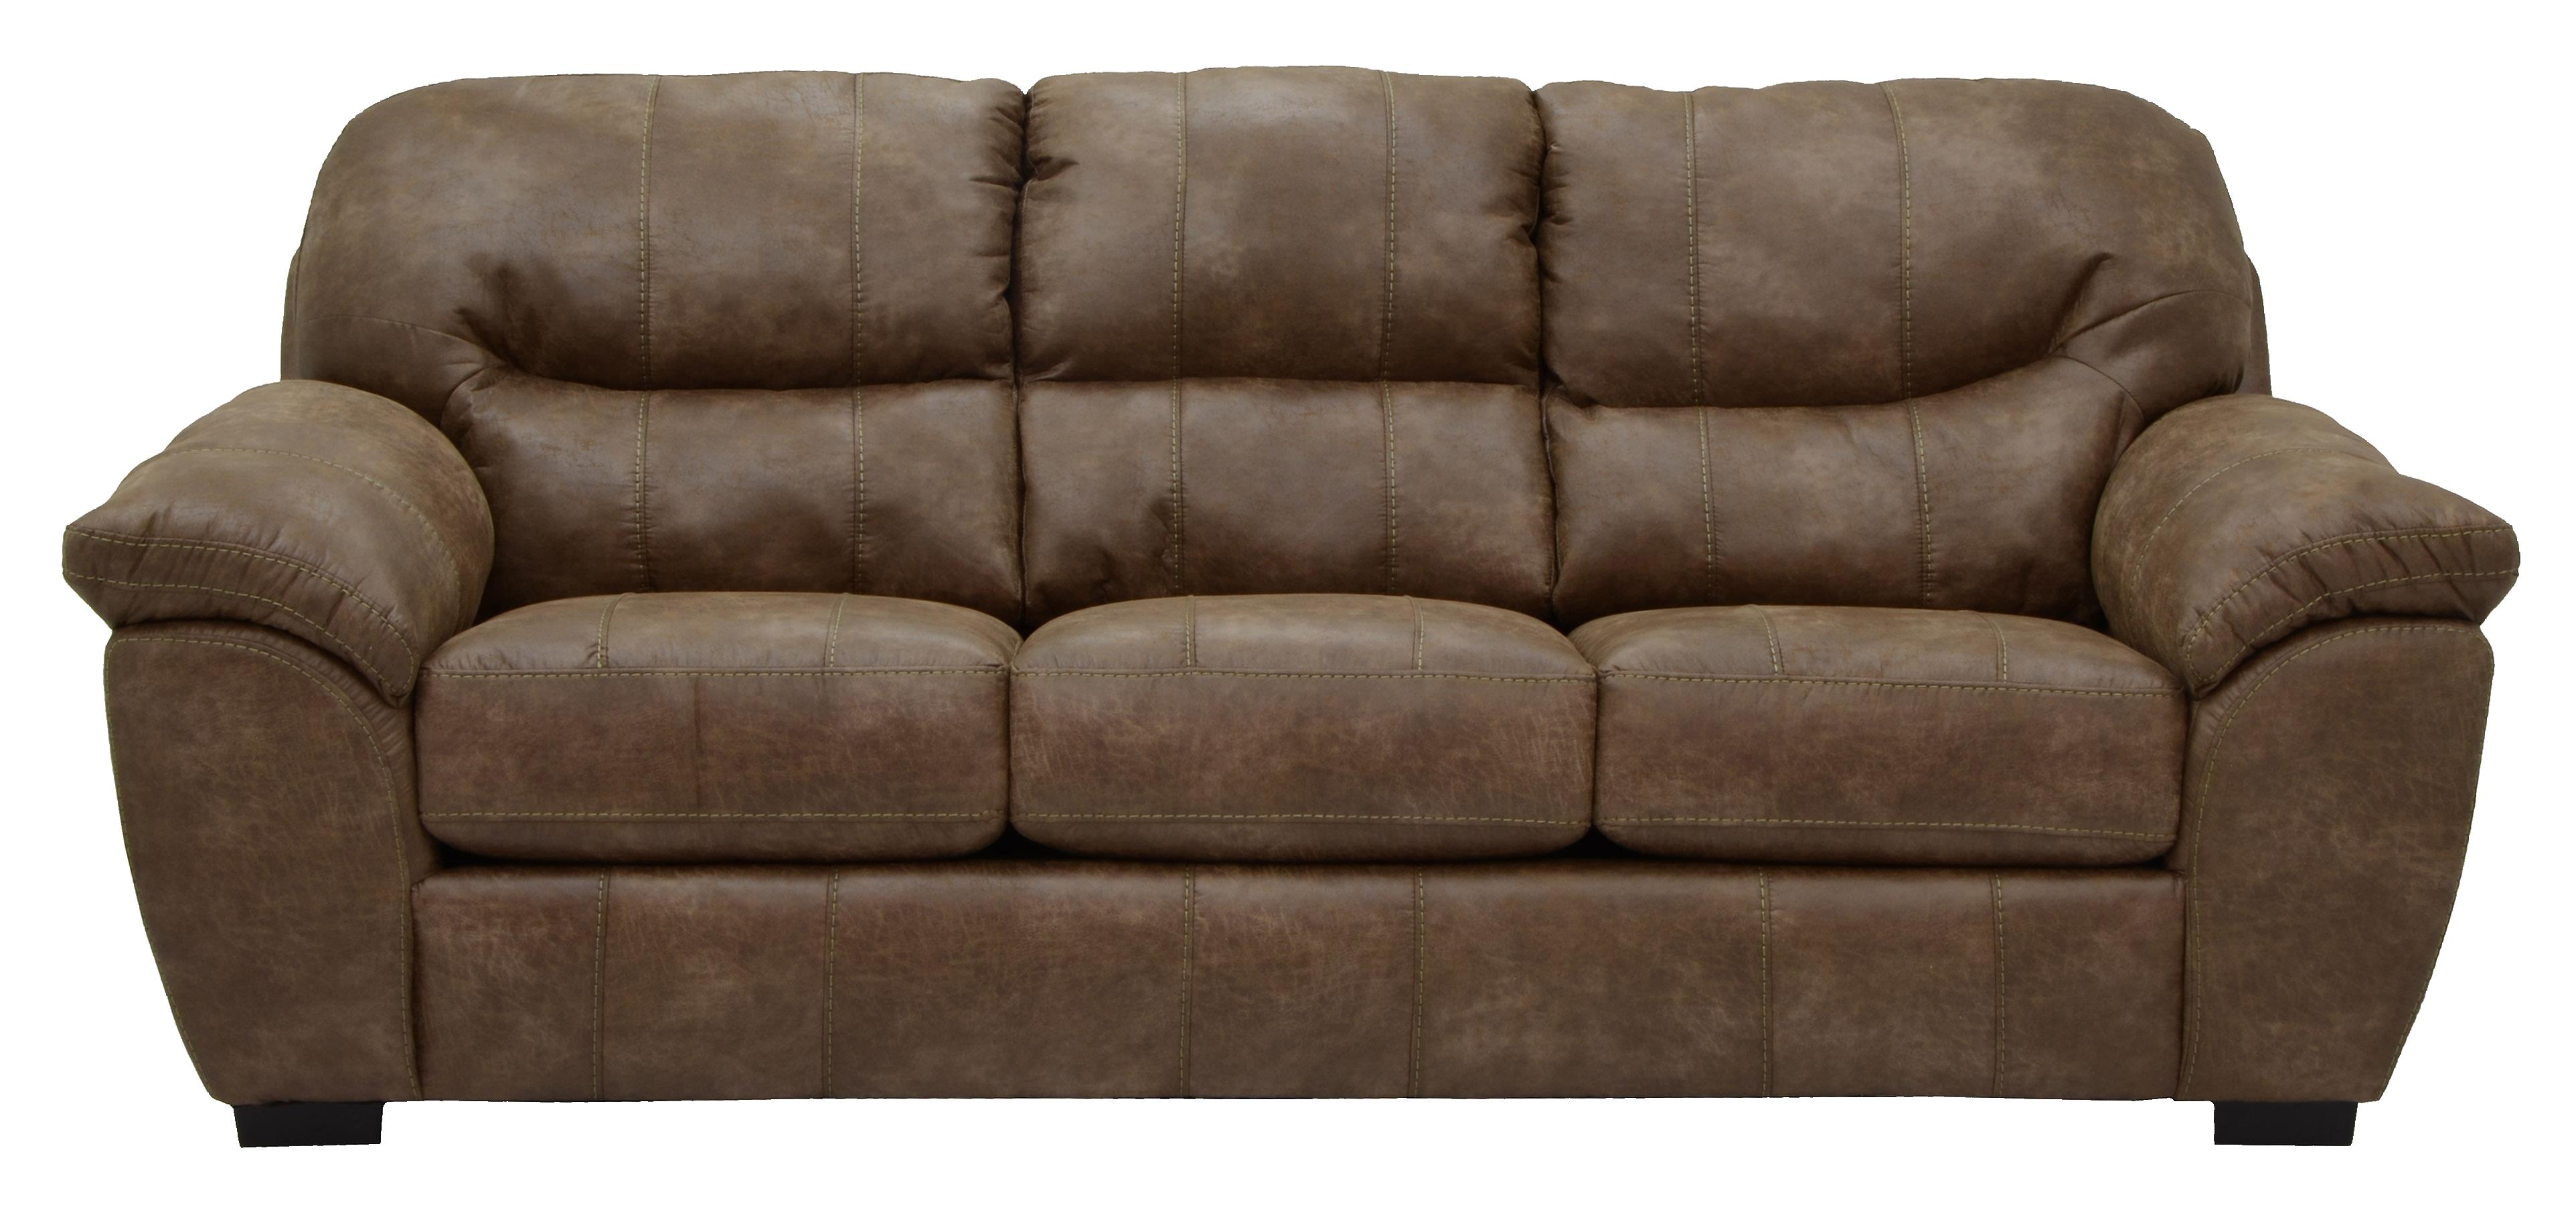 Faux Leather Sofa for Living Rooms and Family Rooms by Jackson Furniture  Wolf Furniture